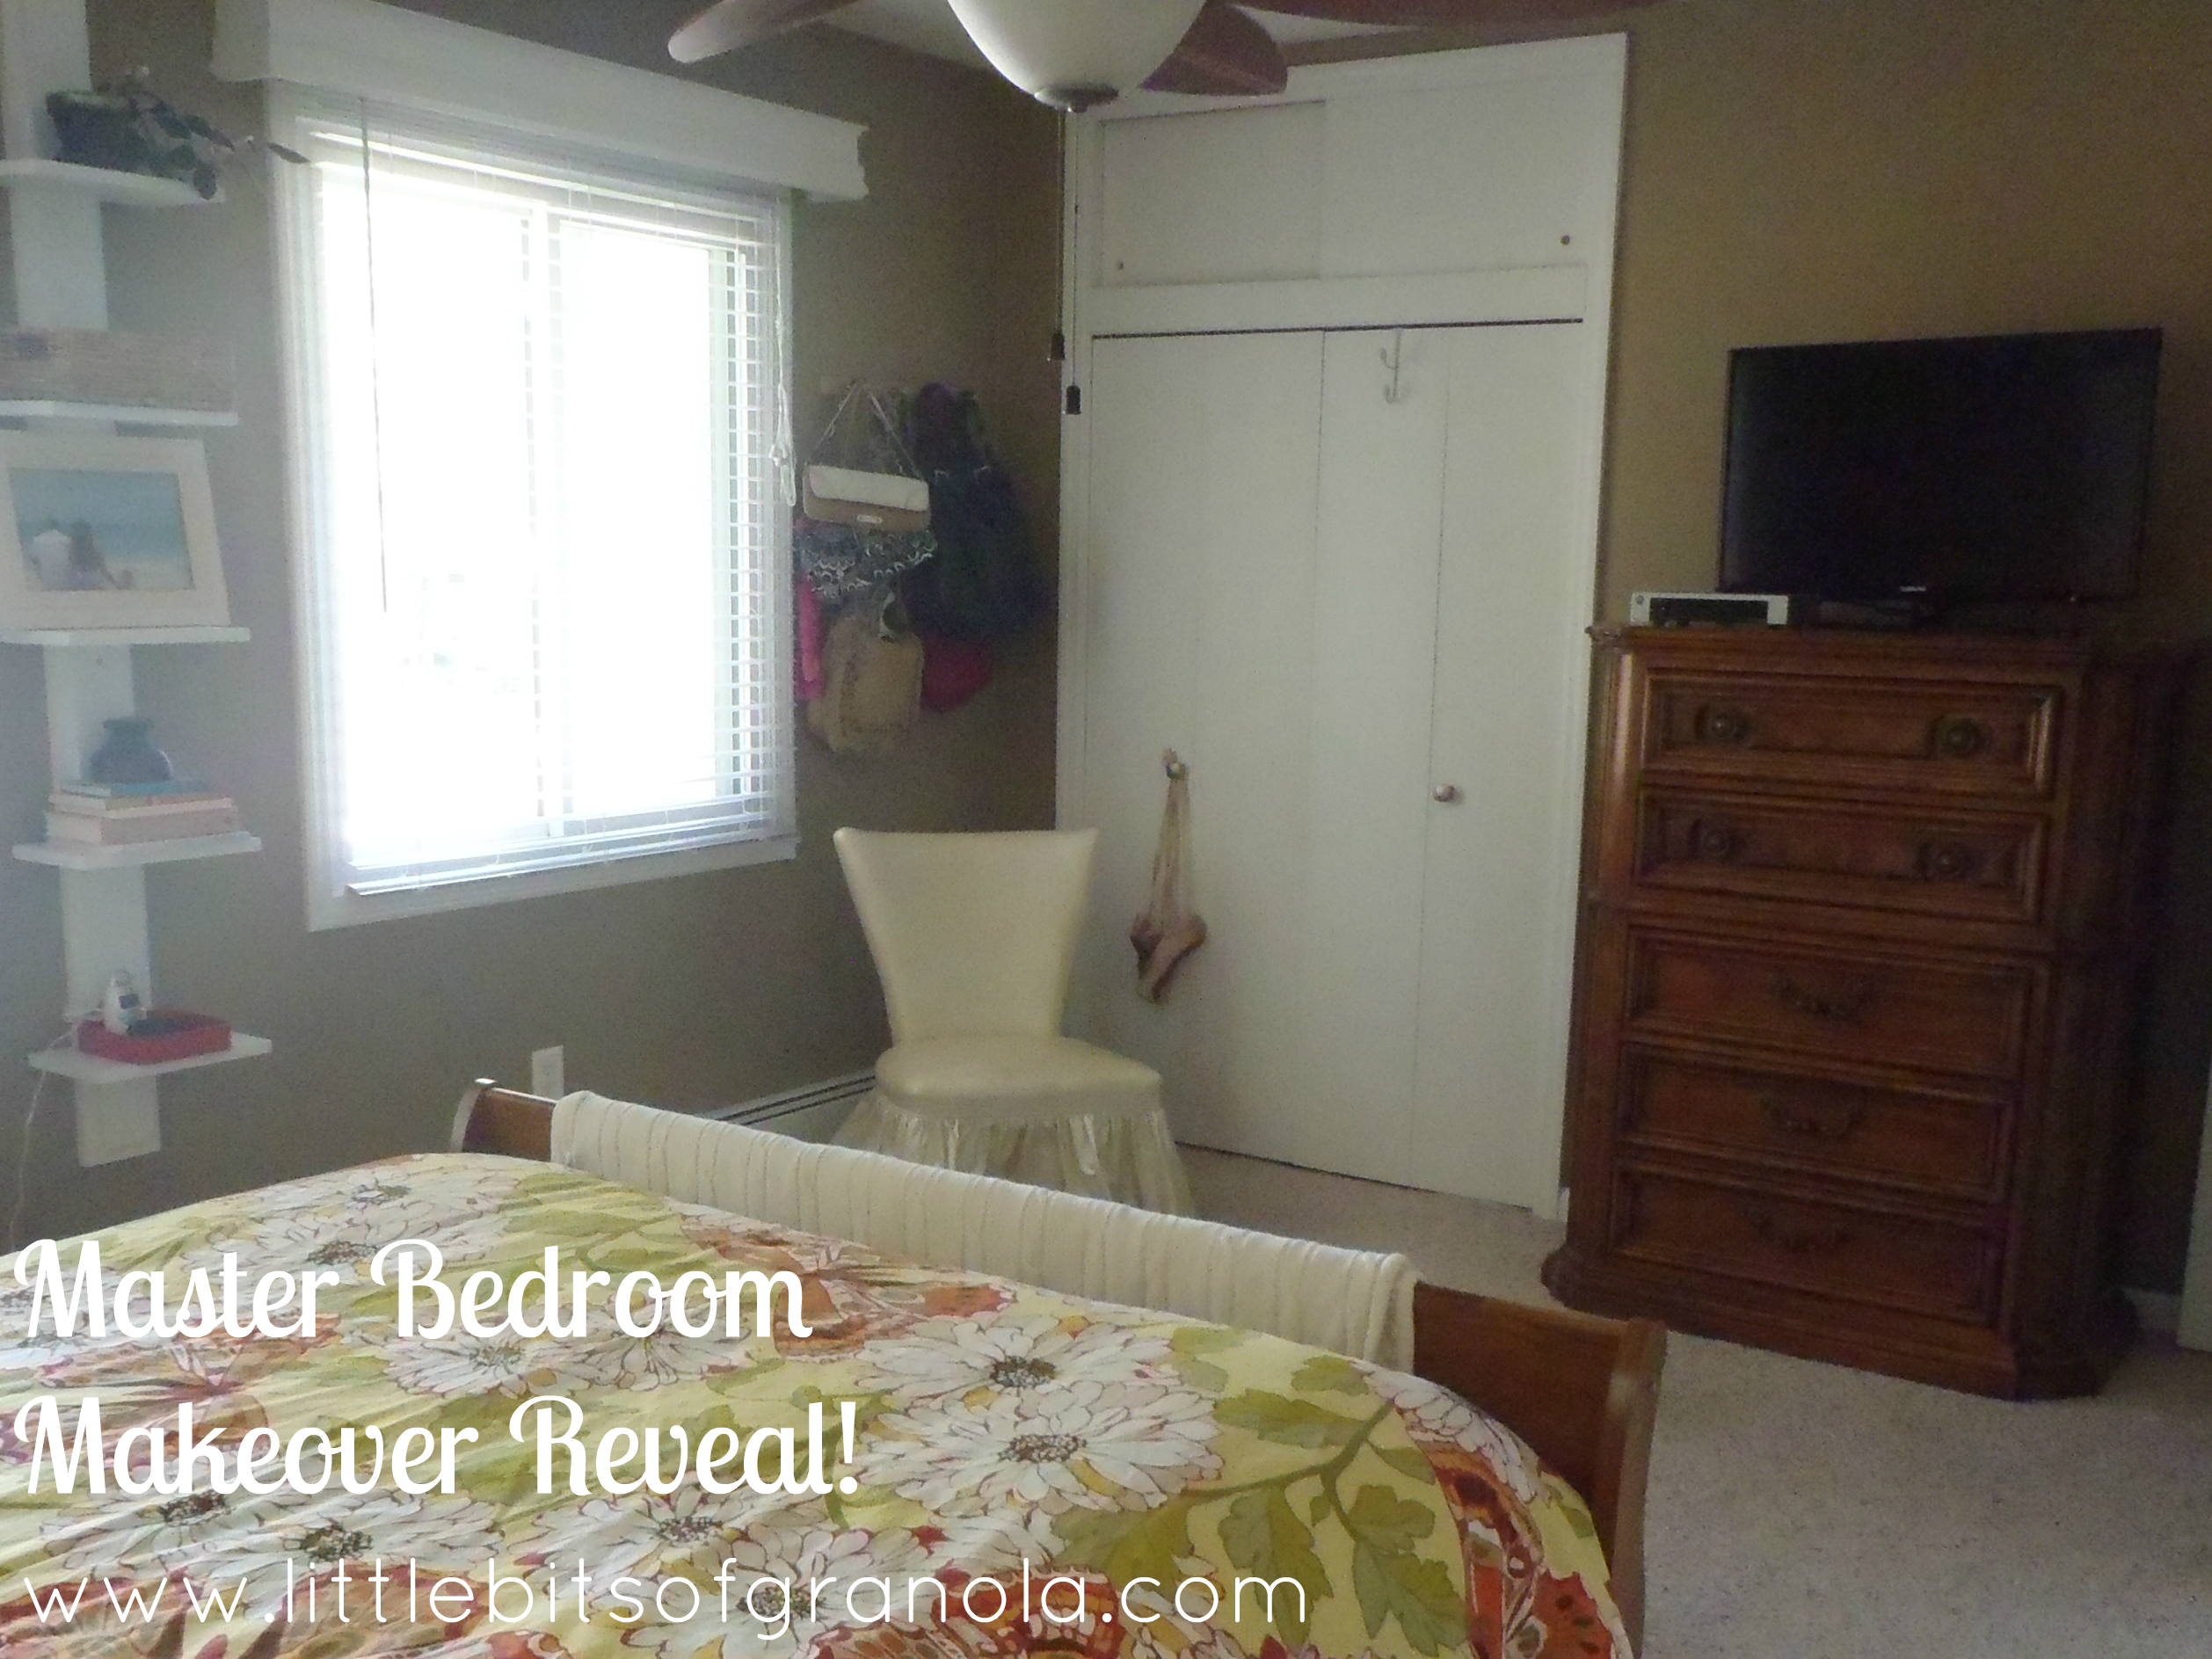 Master bedroom makeover reveal pockets full of wonder Master bedroom makeover pinterest